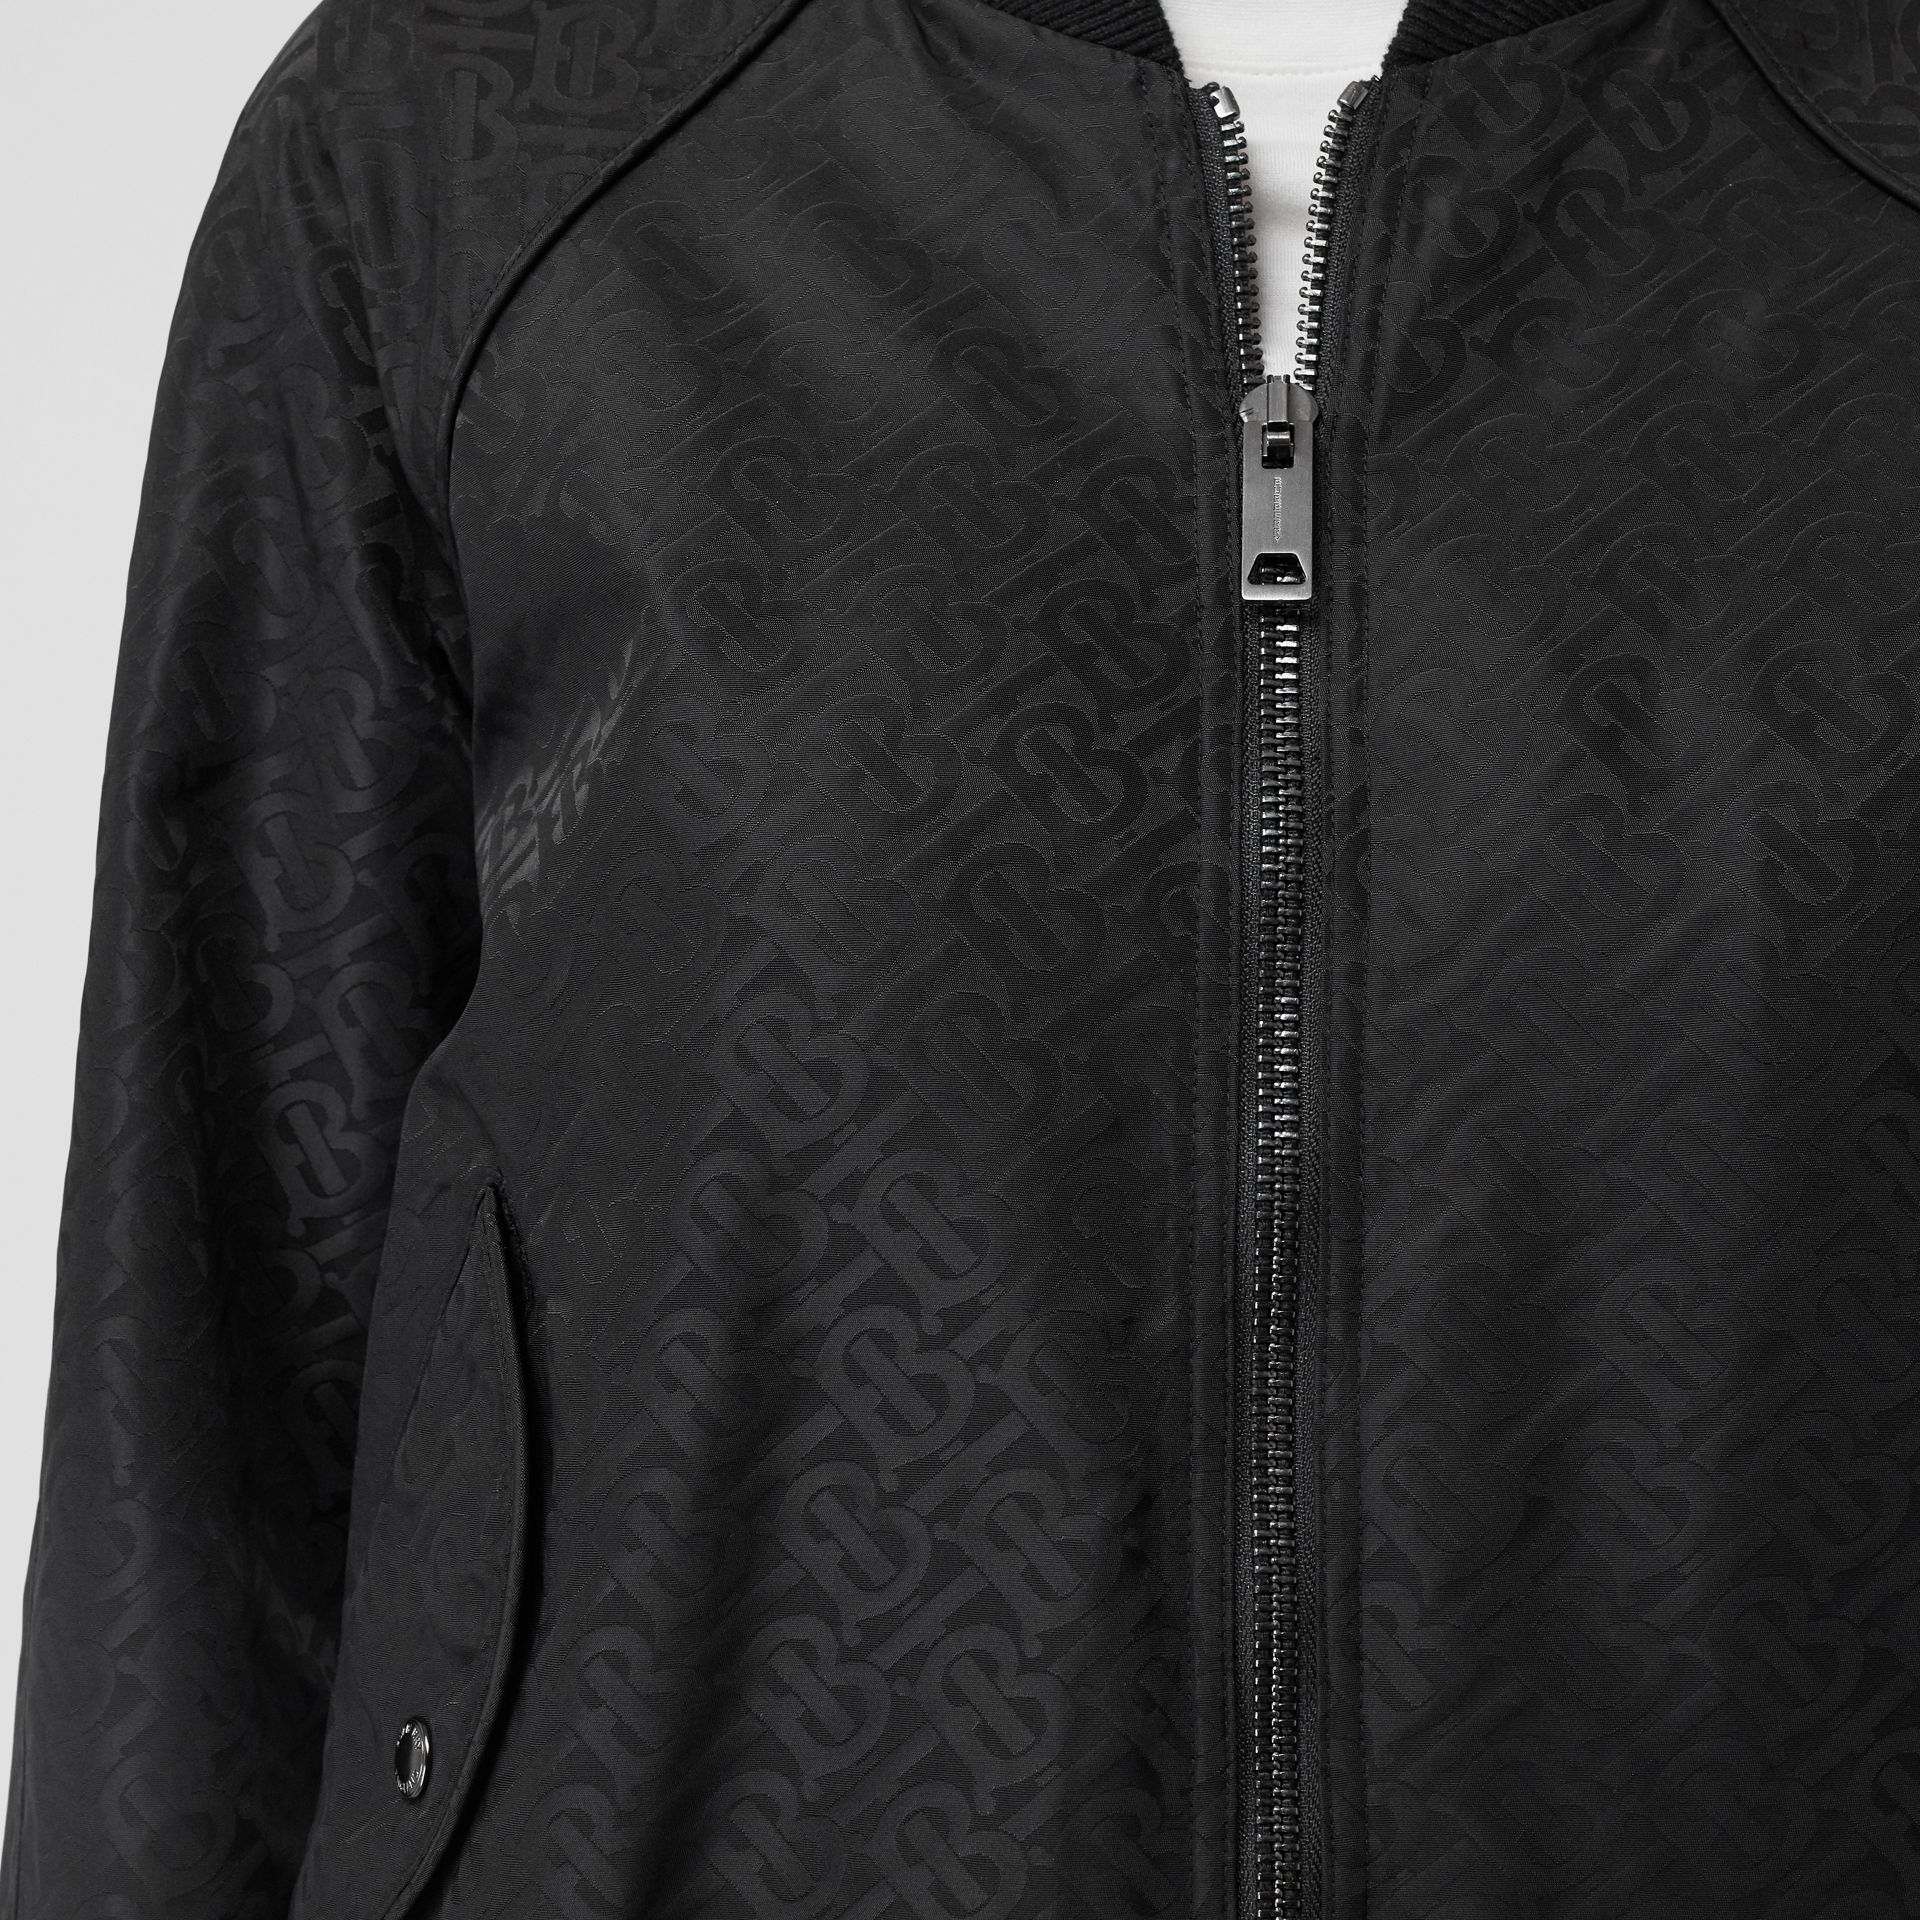 Monogram ECONYL® Jacquard Bomber Jacket in Black - Women | Burberry Hong Kong S.A.R - gallery image 4